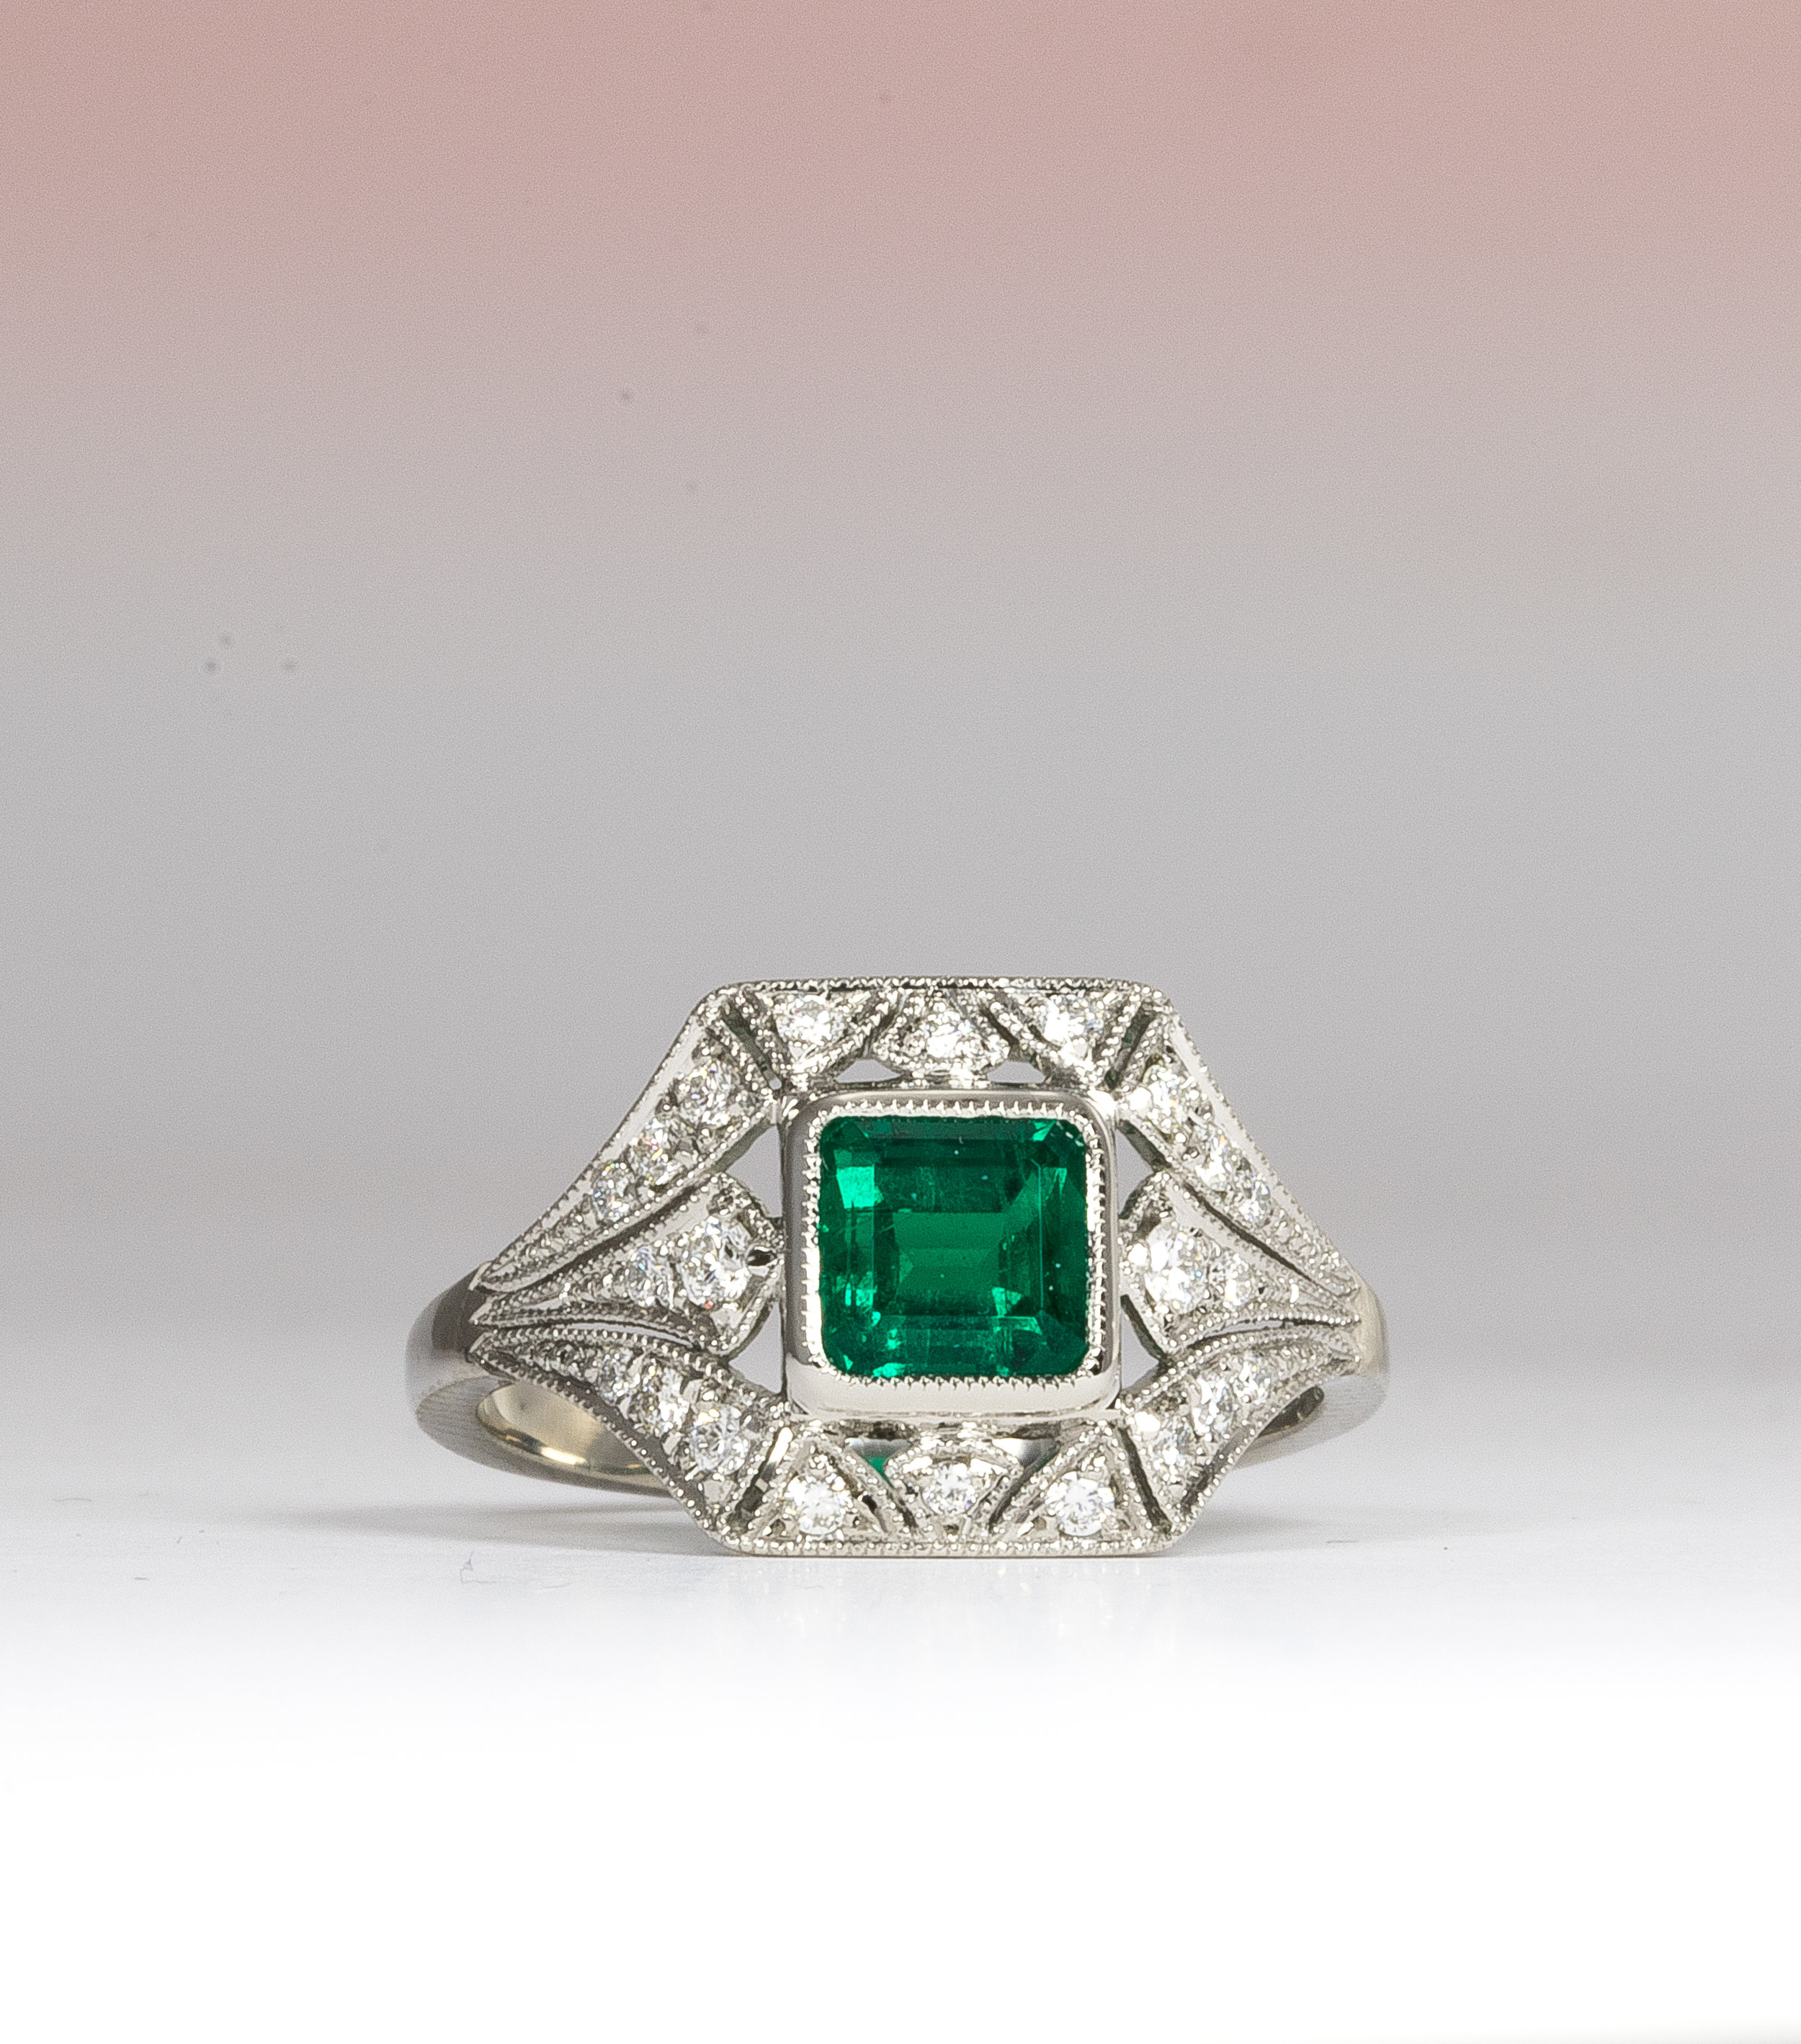 Fine quality emerald set 1920's style cluster ring. - Our client had found the image of an antique emerald ring online that she liked the look of but wanted a deeper green, more lustrous emerald. After searching and finding the perfect stone, we designed the new platinum ring with a heavier shank and a slightly more robust head. We did this to cope with the more active, busy life of our customer but still managed to maintain the delicacy of design that jewellery from this period had.